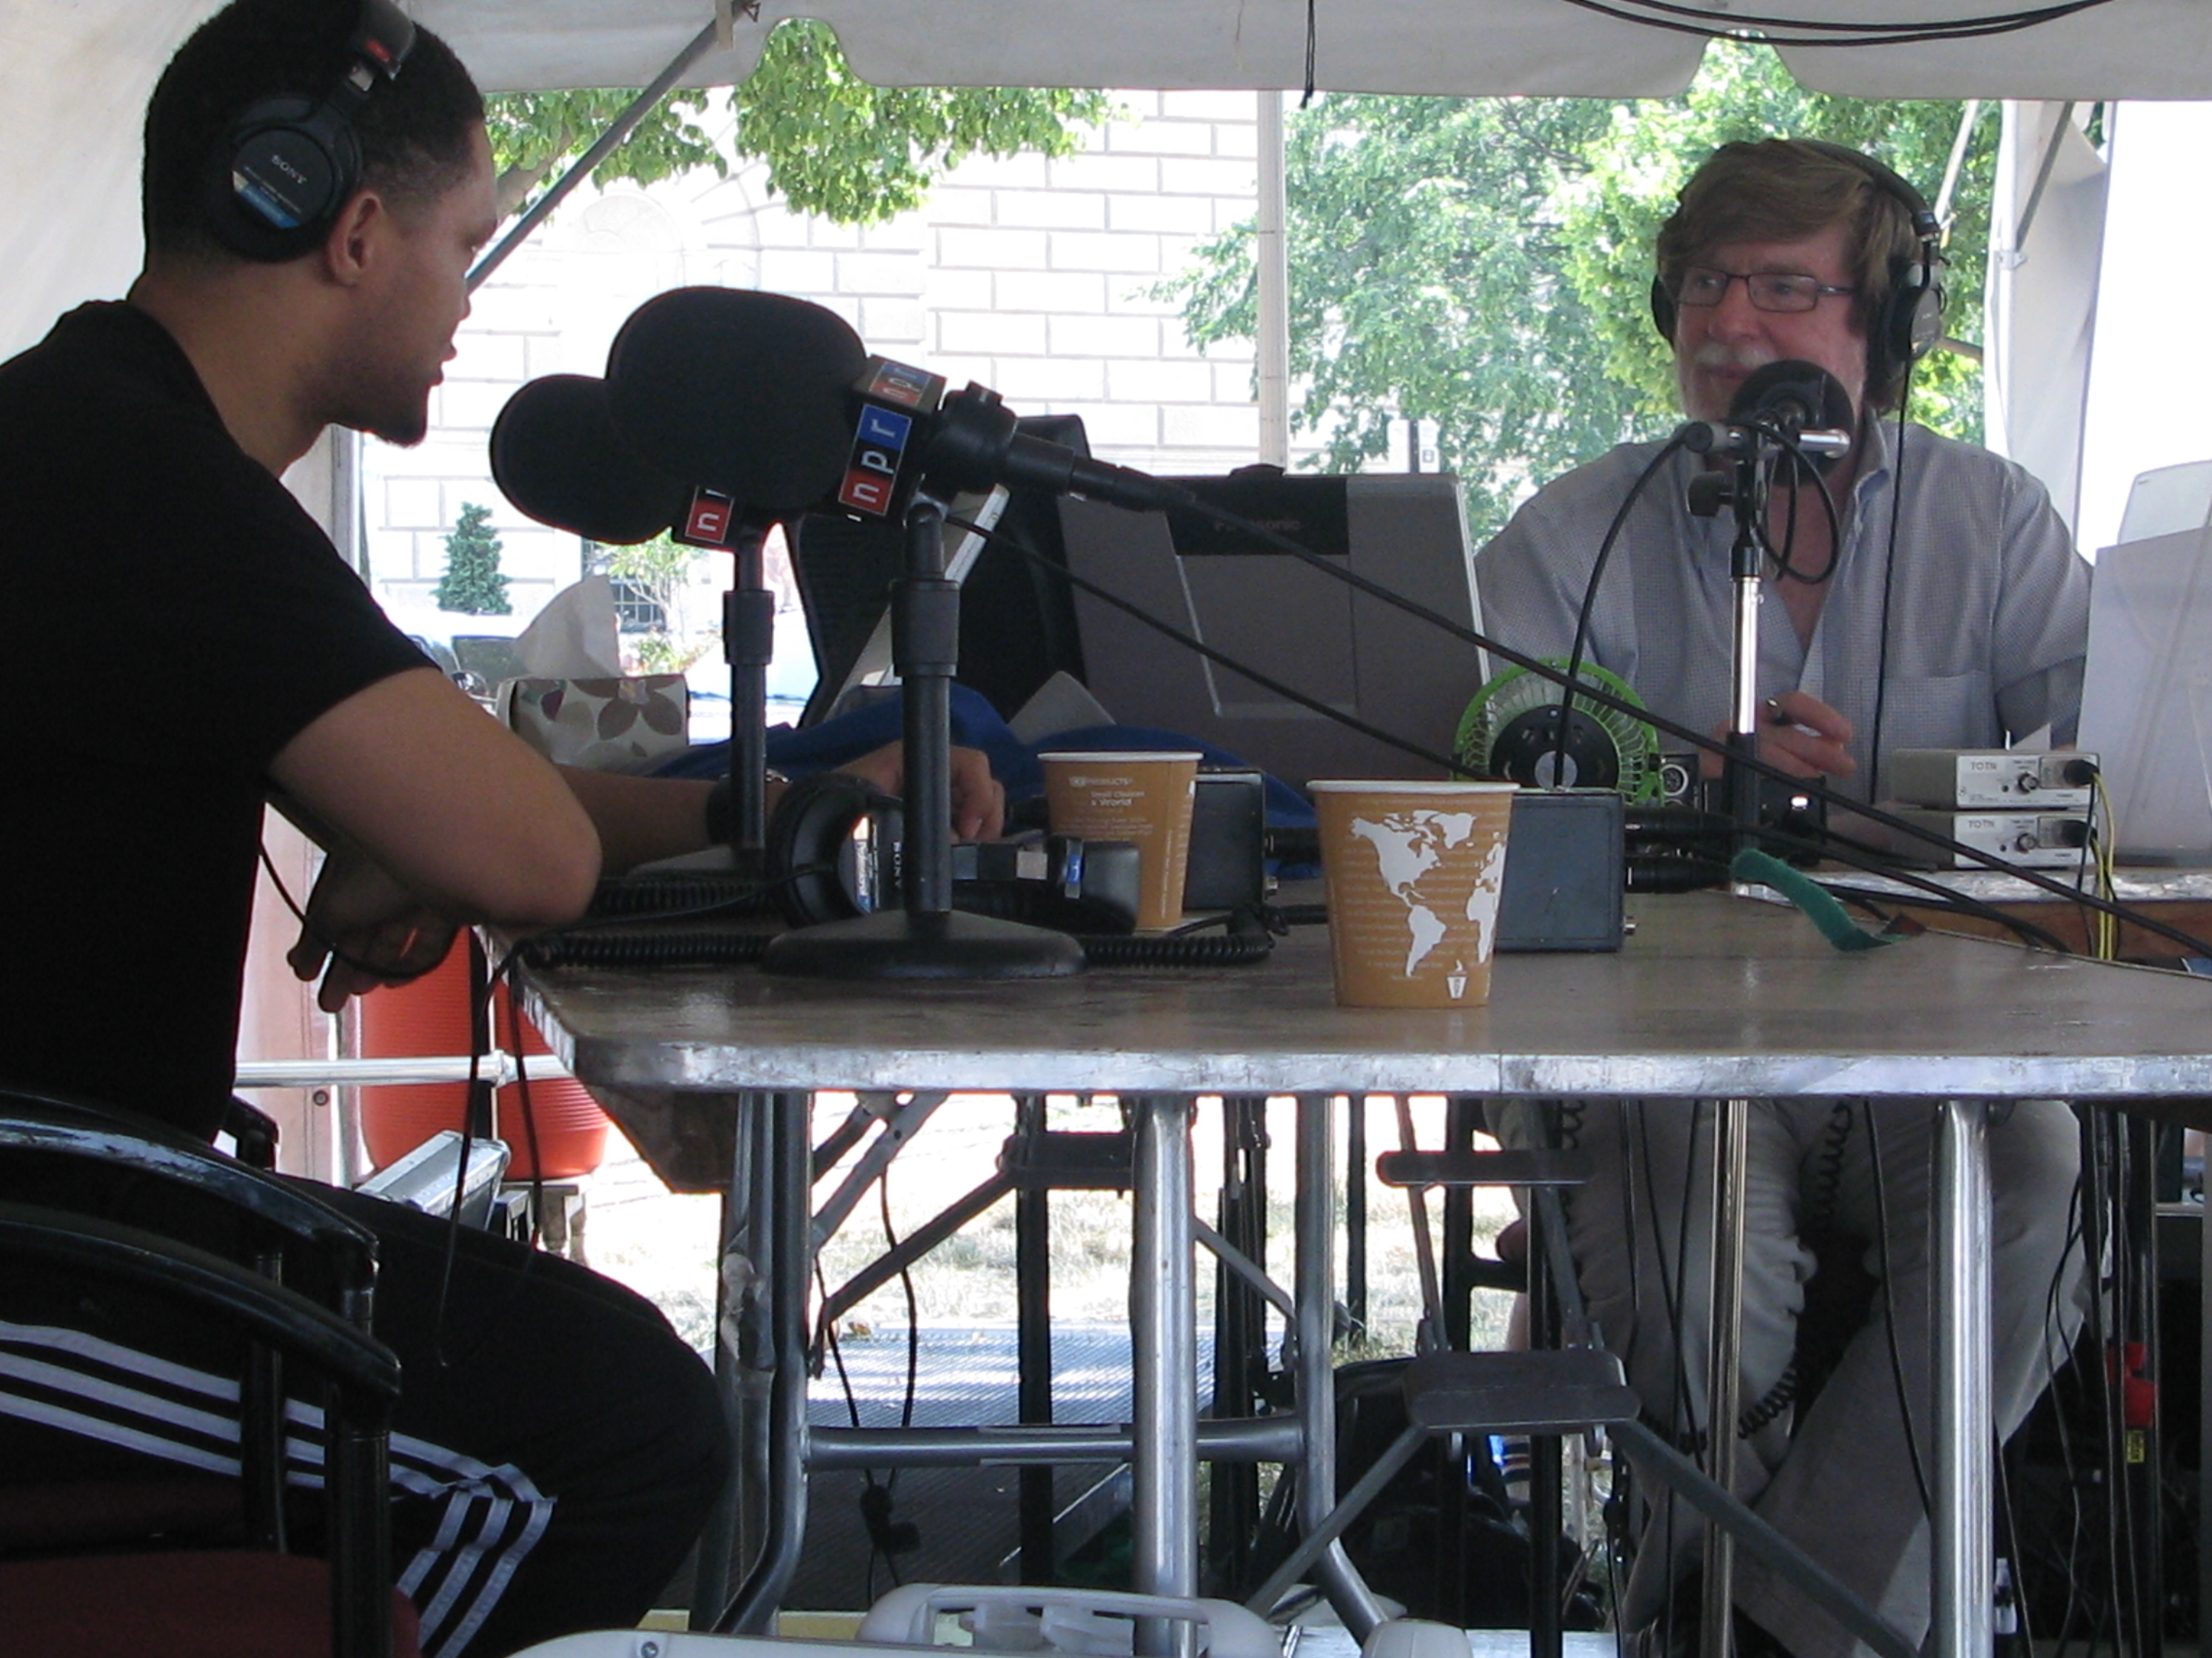 Host Neal Conan chats with comedian Trevor Noah during Talk of the Nation's live broadcast at the Smithsonian Folklife Festival.